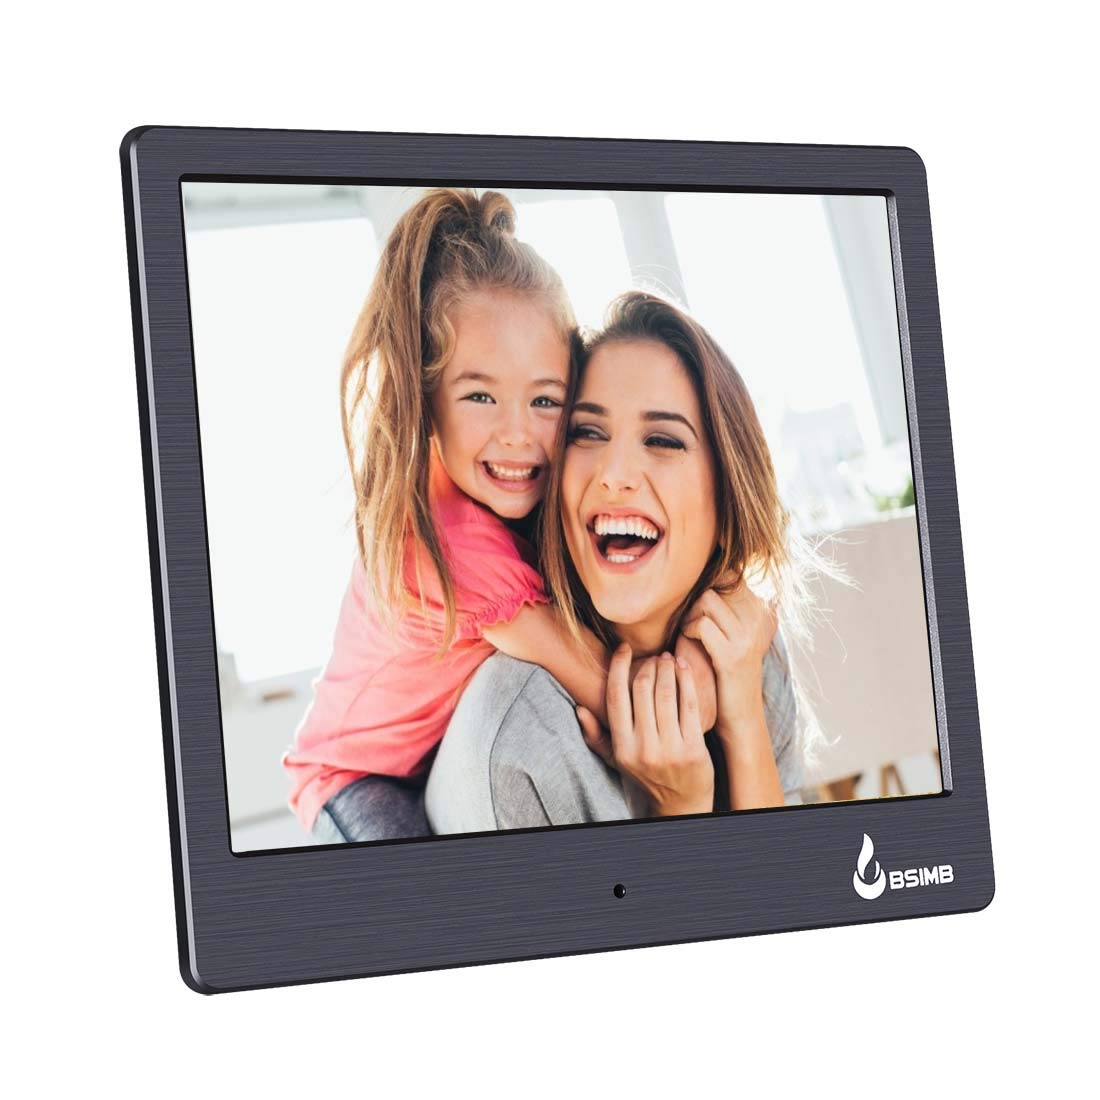 BSIMB Digital Picture Frame Digital Photo Frame 8 Inch 1024x768 (4:3) Hi-Res LED Display Electronic Photo Frame with Remote Control Support USB Stick/SD Card M12 by Bsimb